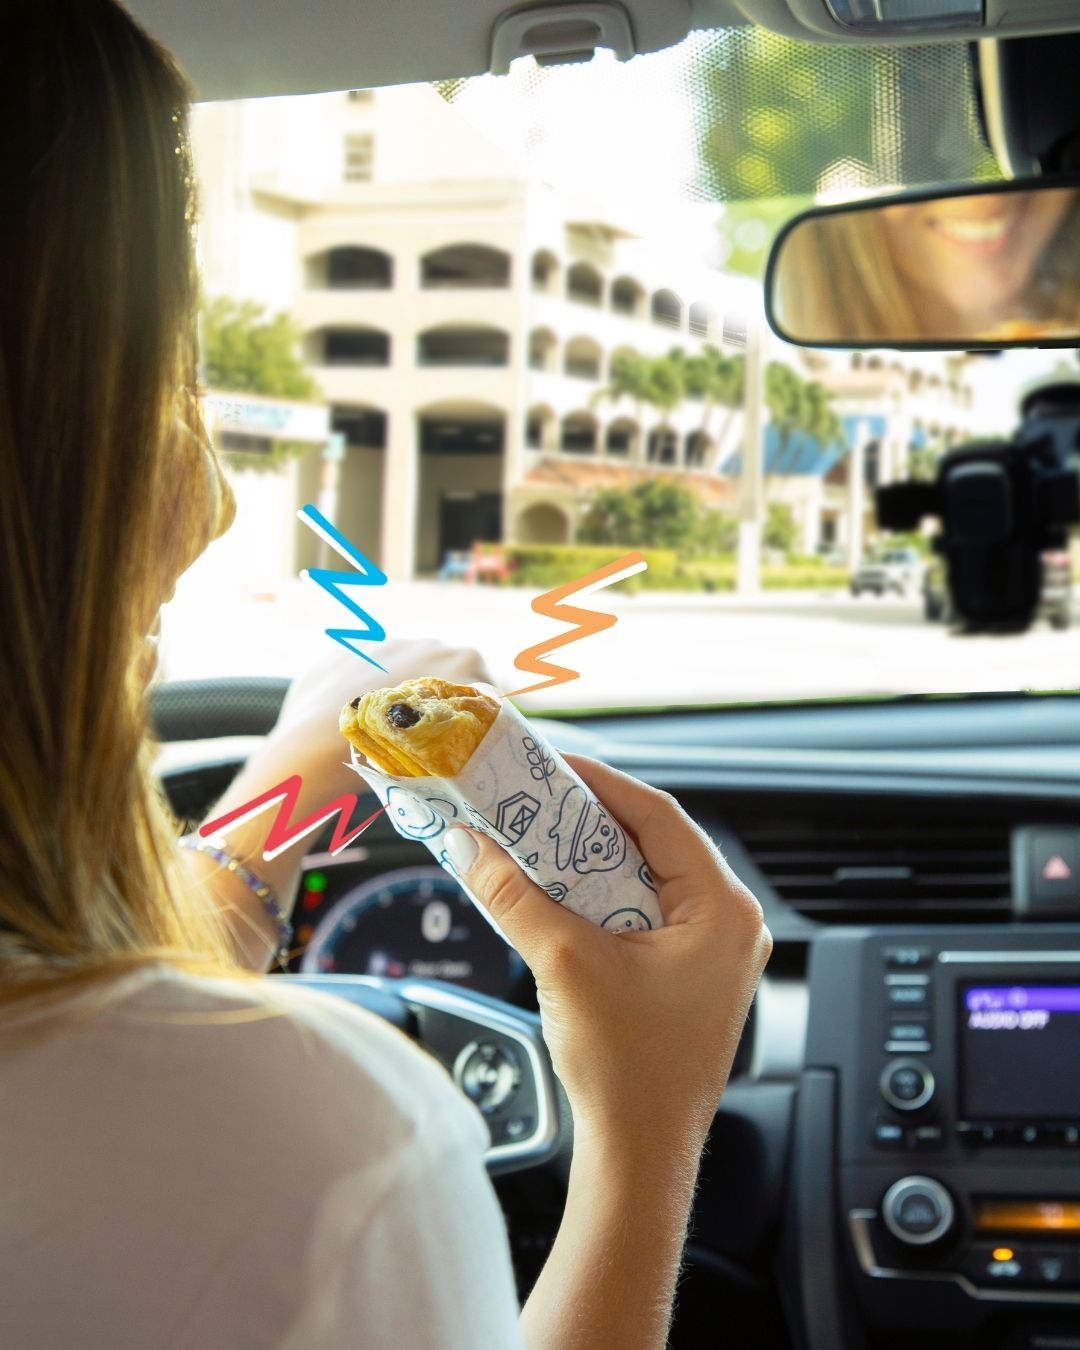 A woman eating a chocolate croissant from bakerly in the car (Snack Time: Unwrap et Voilà With These Snacks From Bakerly Lynda Lantz Contributor Miami Mom Collective)